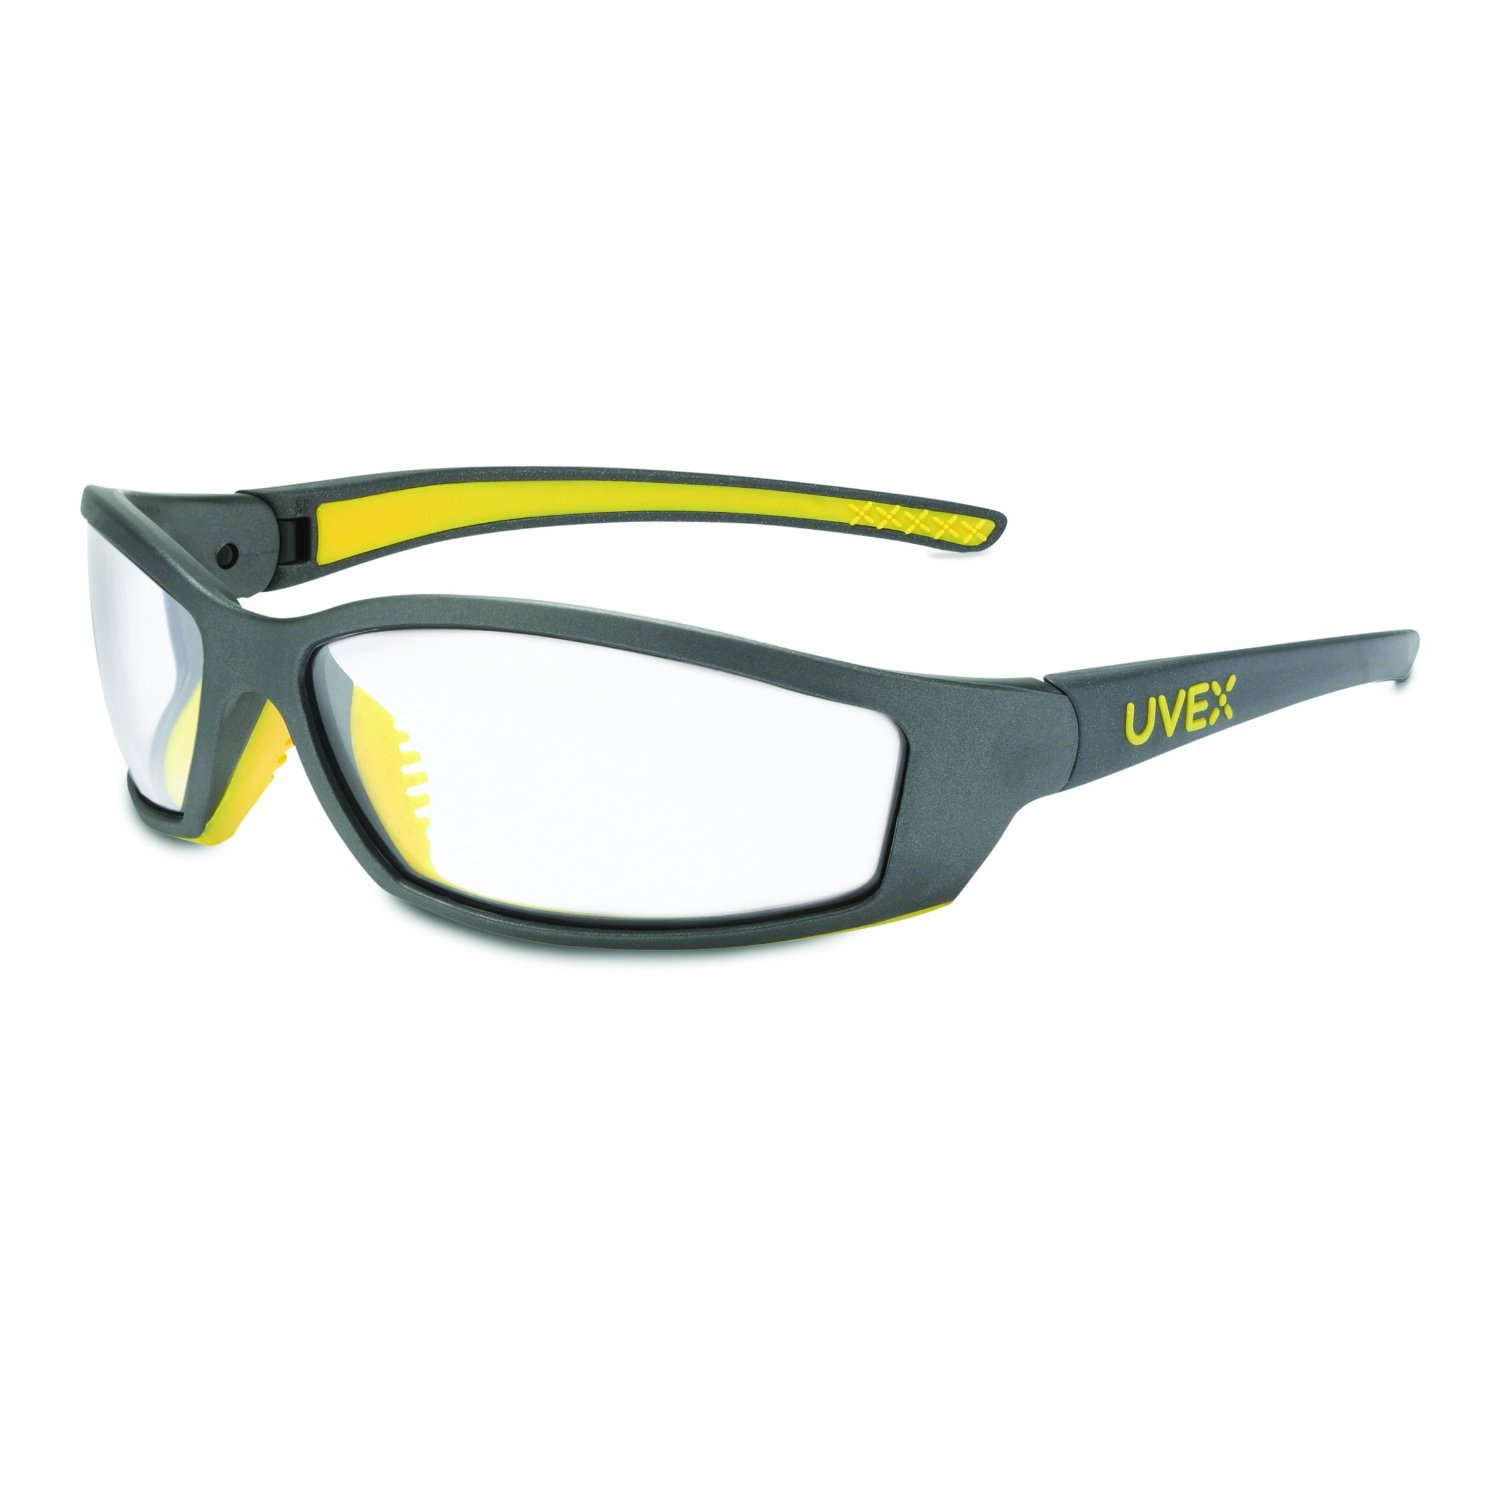 Uvex SX0400 SolarPro Safety Eyewear Clear Supra-Dura Hardcoat Lens, Gray and ...